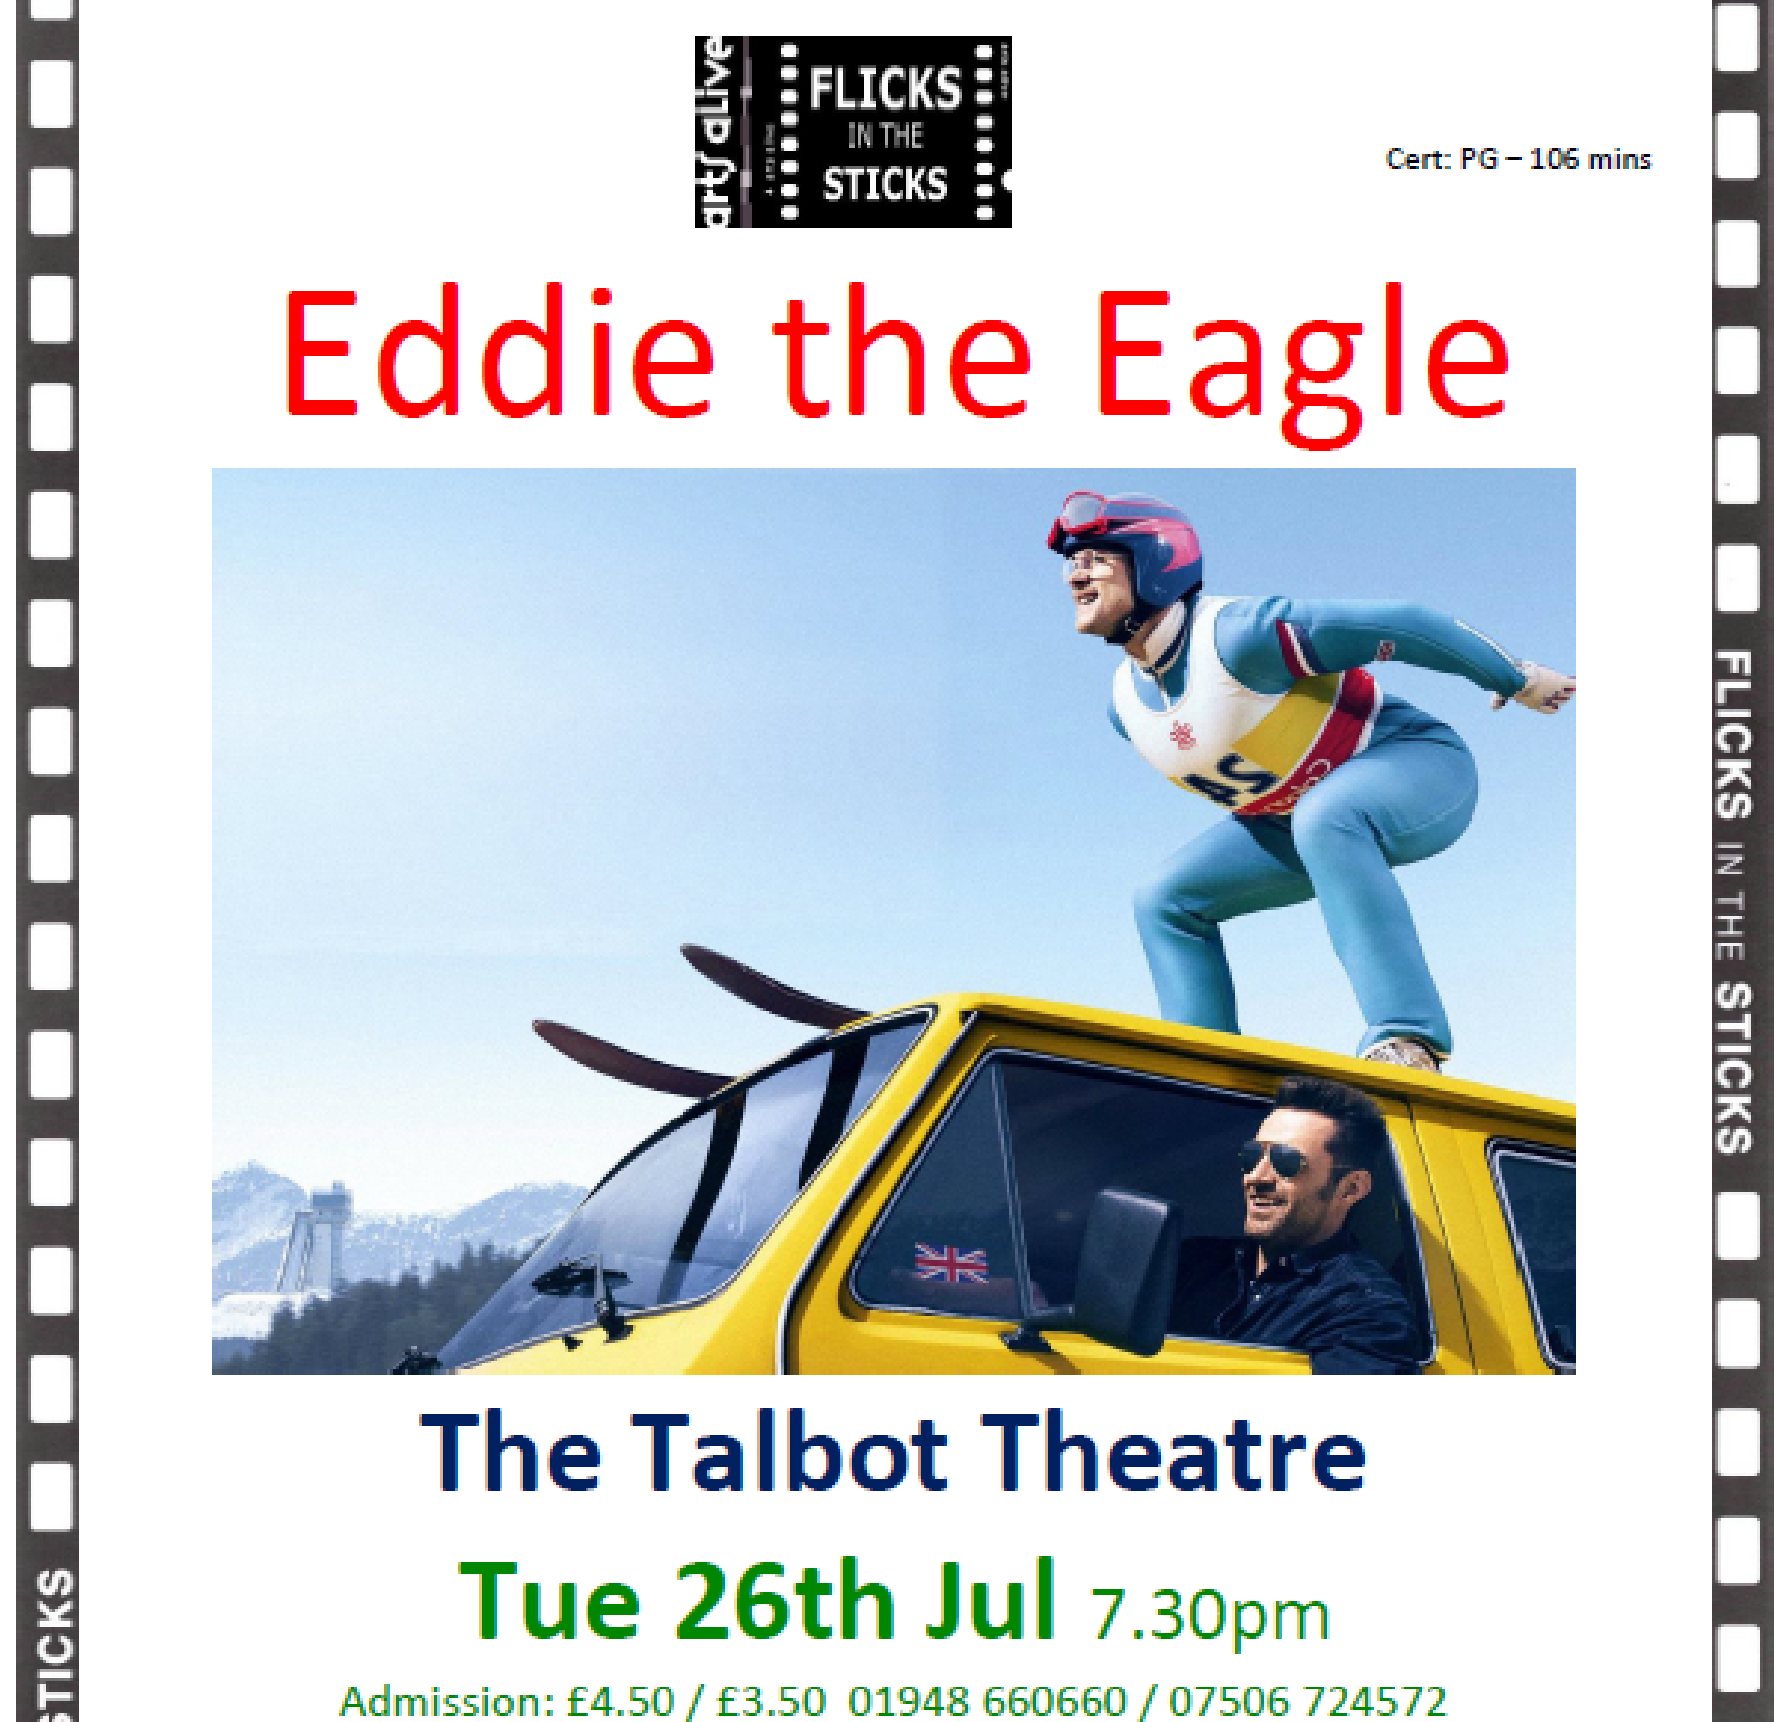 Tuesday 26th July - The Talbot Theatre